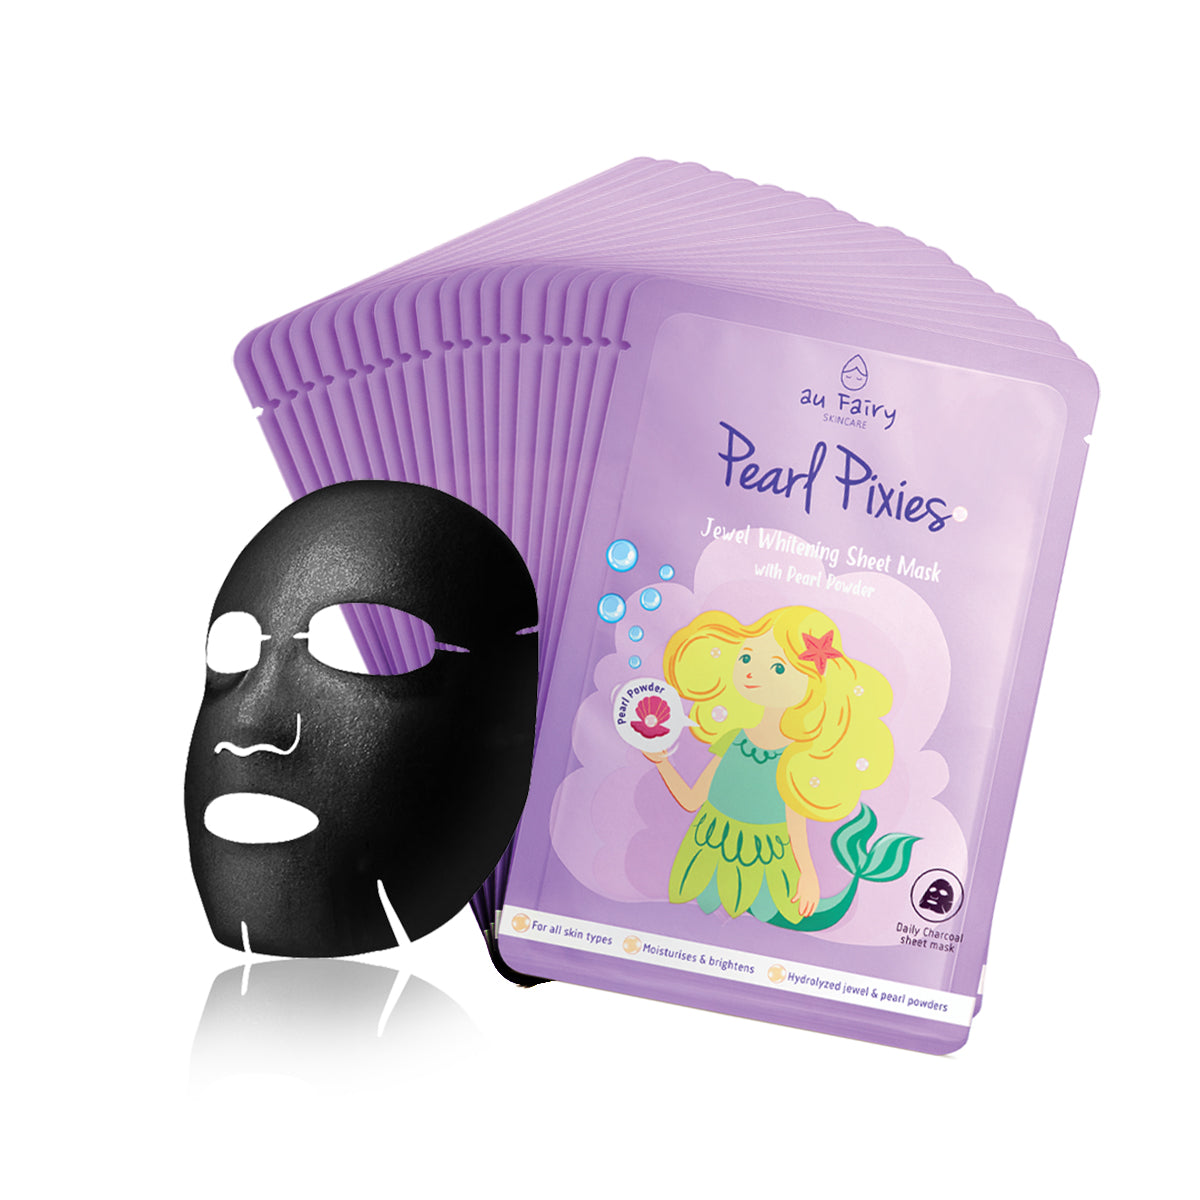 BUY 1 FREE 1: AUFAIRY Pearl Pixies Whitening Mask - Pearl Essence